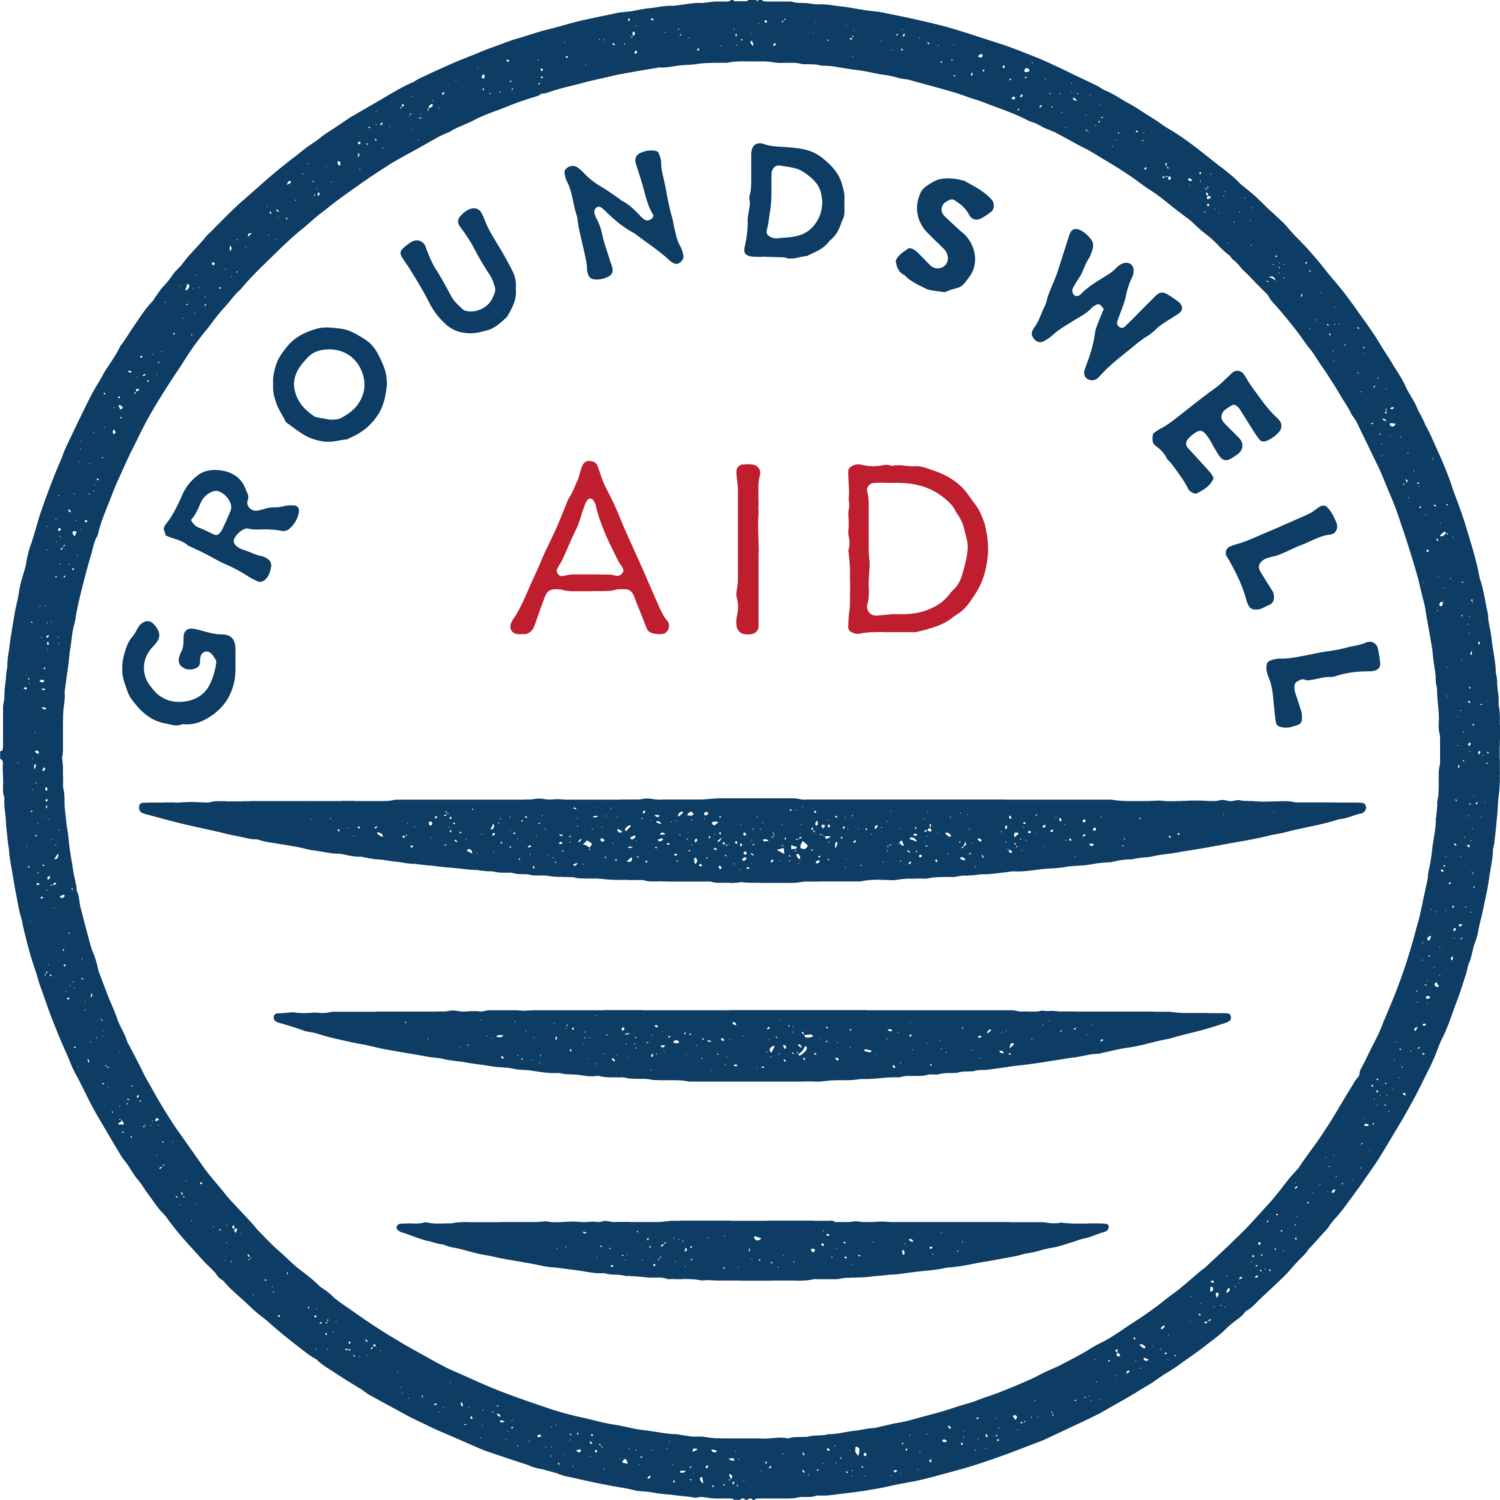 Groundswell Aid